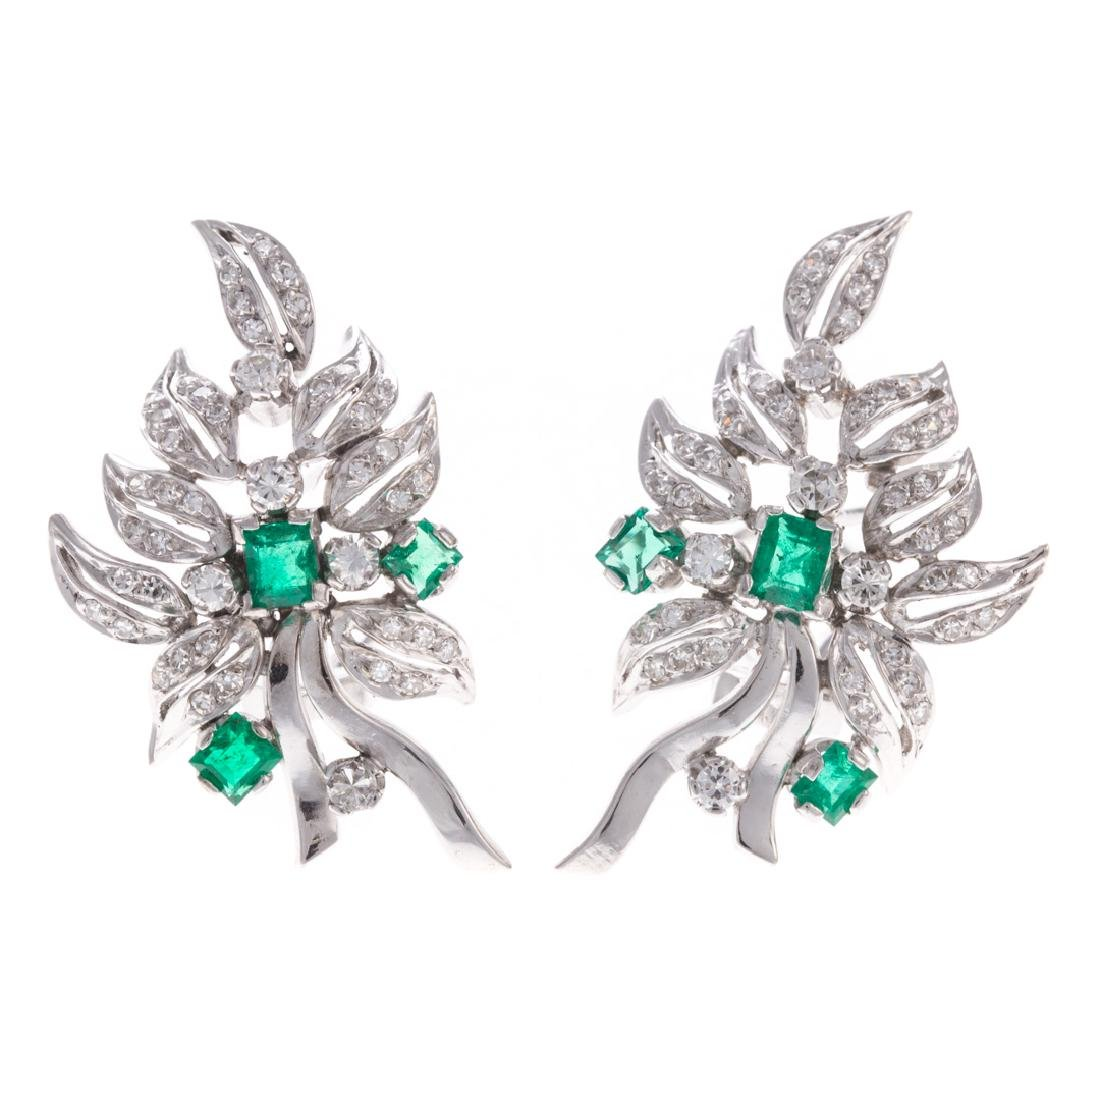 A Pair of Emerald and Diamond Earrings in 18K